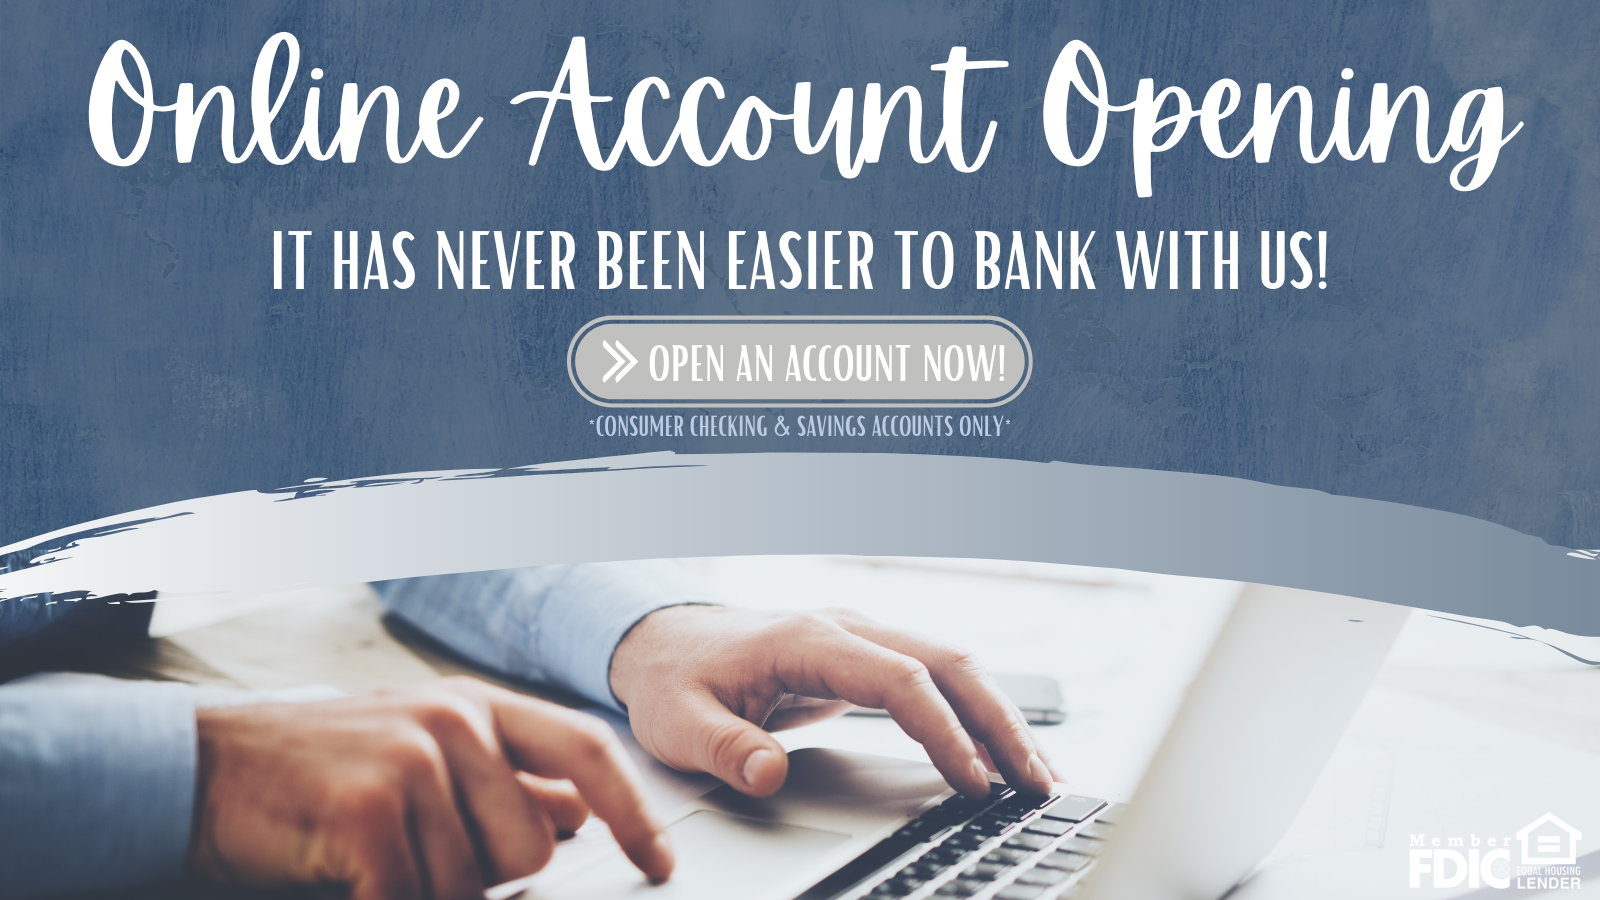 Online Account Opening Photo